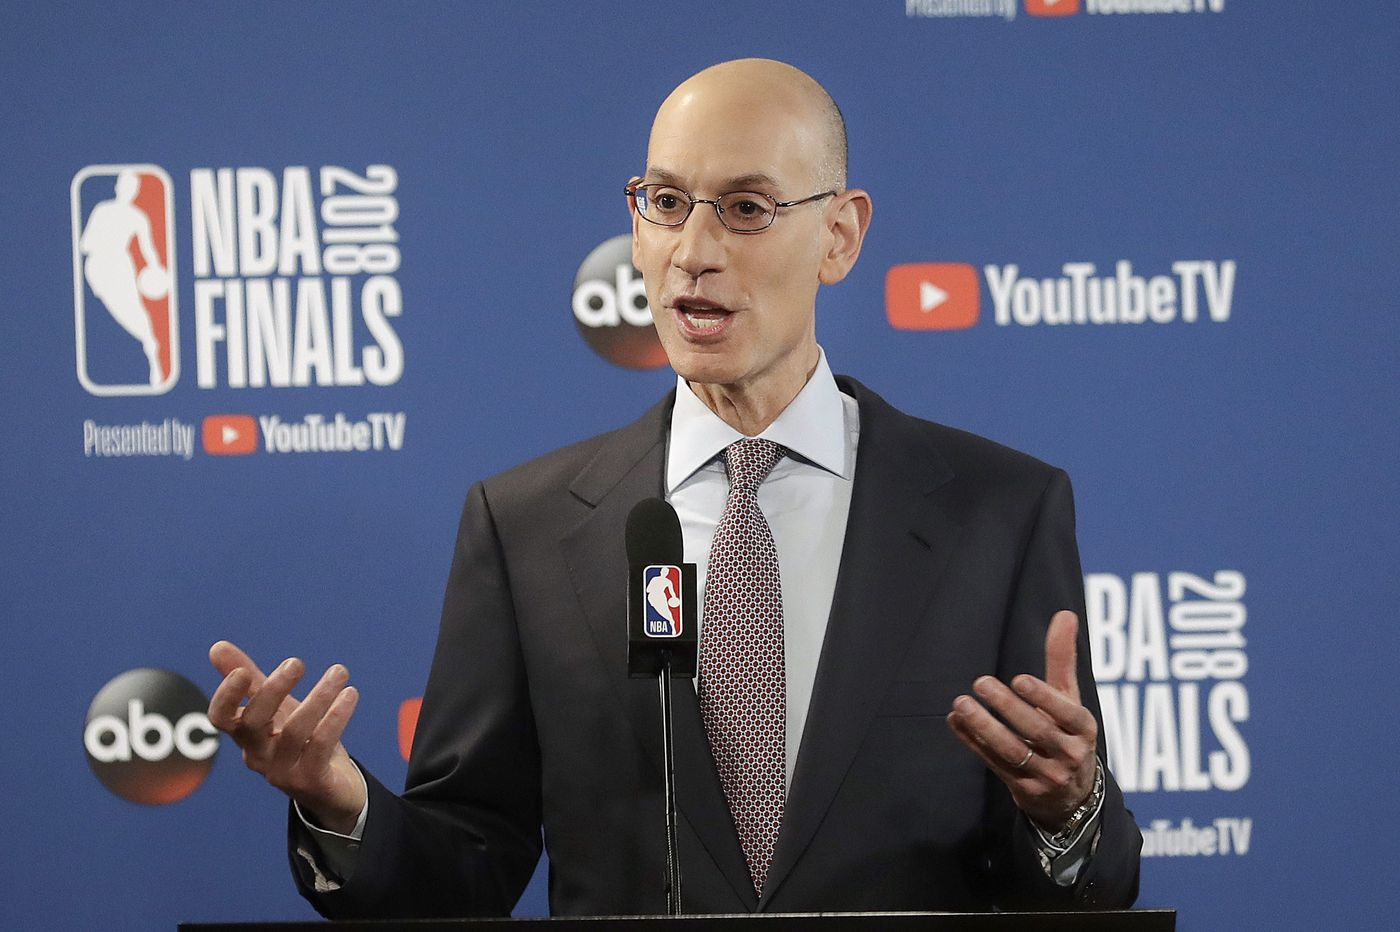 NBA committed to youth basketball through jr. NBA World Championship